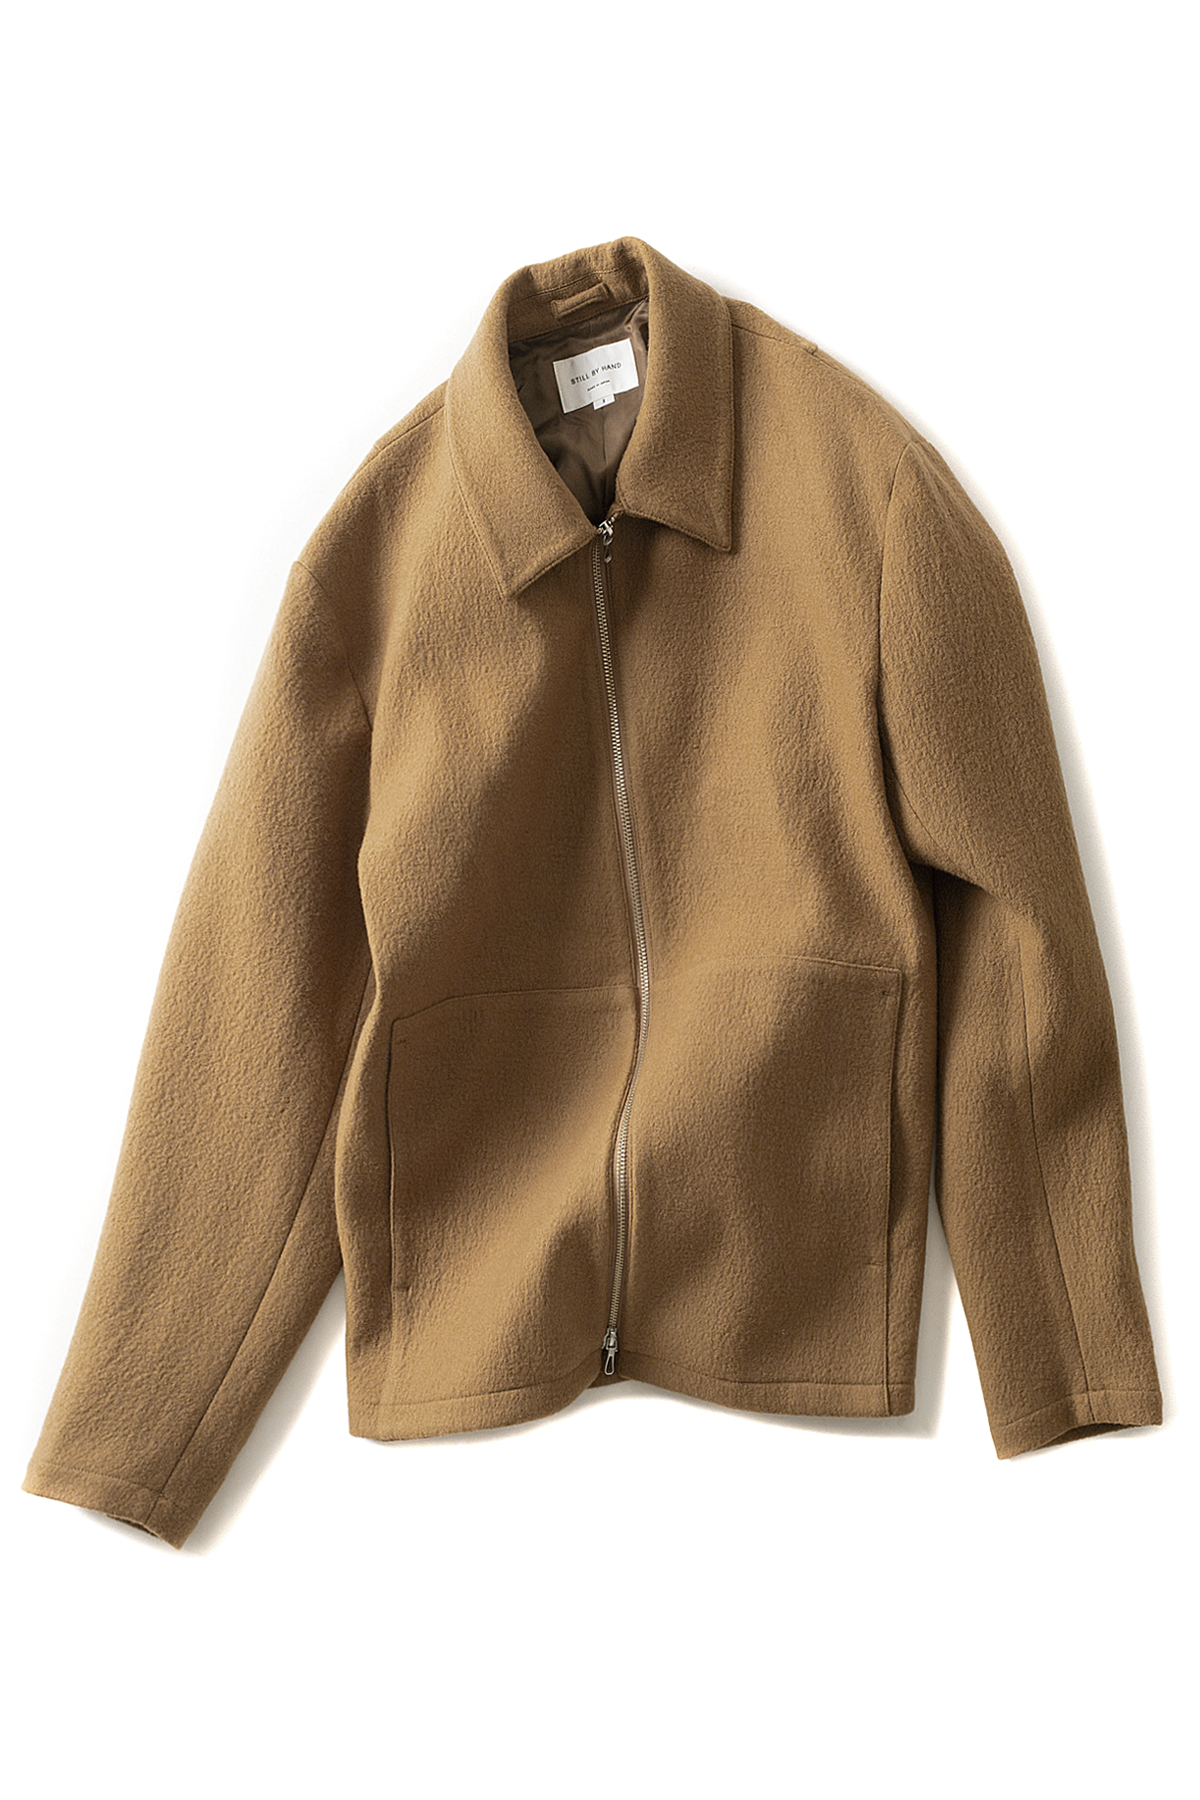 Still by Hand : Loop Yarn Zip-Up Blouson (Camel)